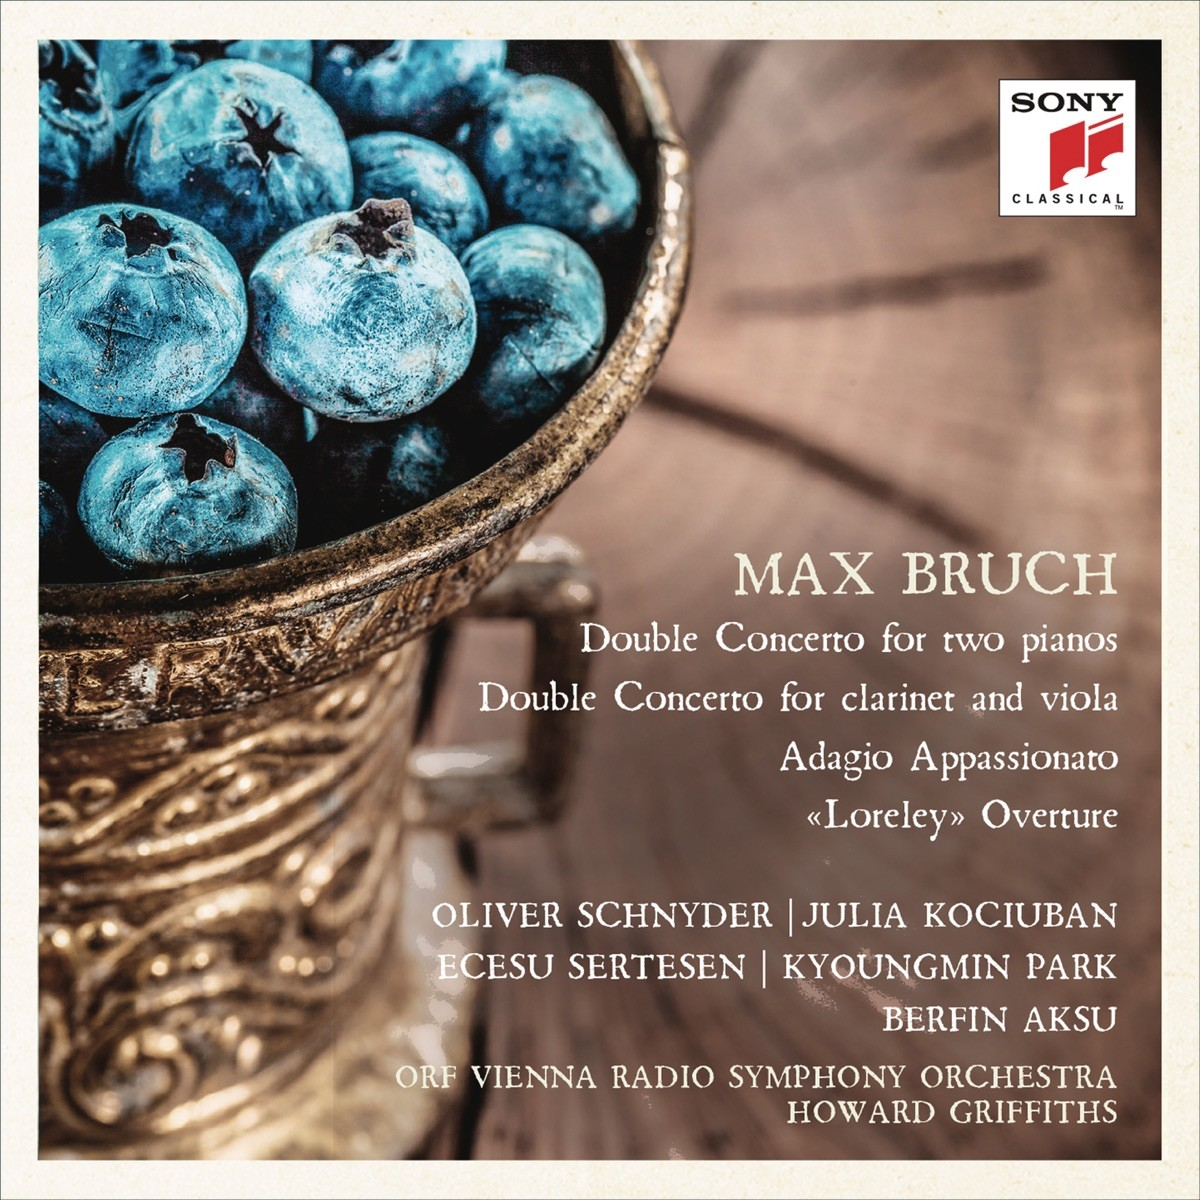 ORF Vienna Radio Symphony Orchestra , Howard Griffiths - Bruch: Double Concertos, Adagio appassionato & Loreley Overture CD - 19075897452